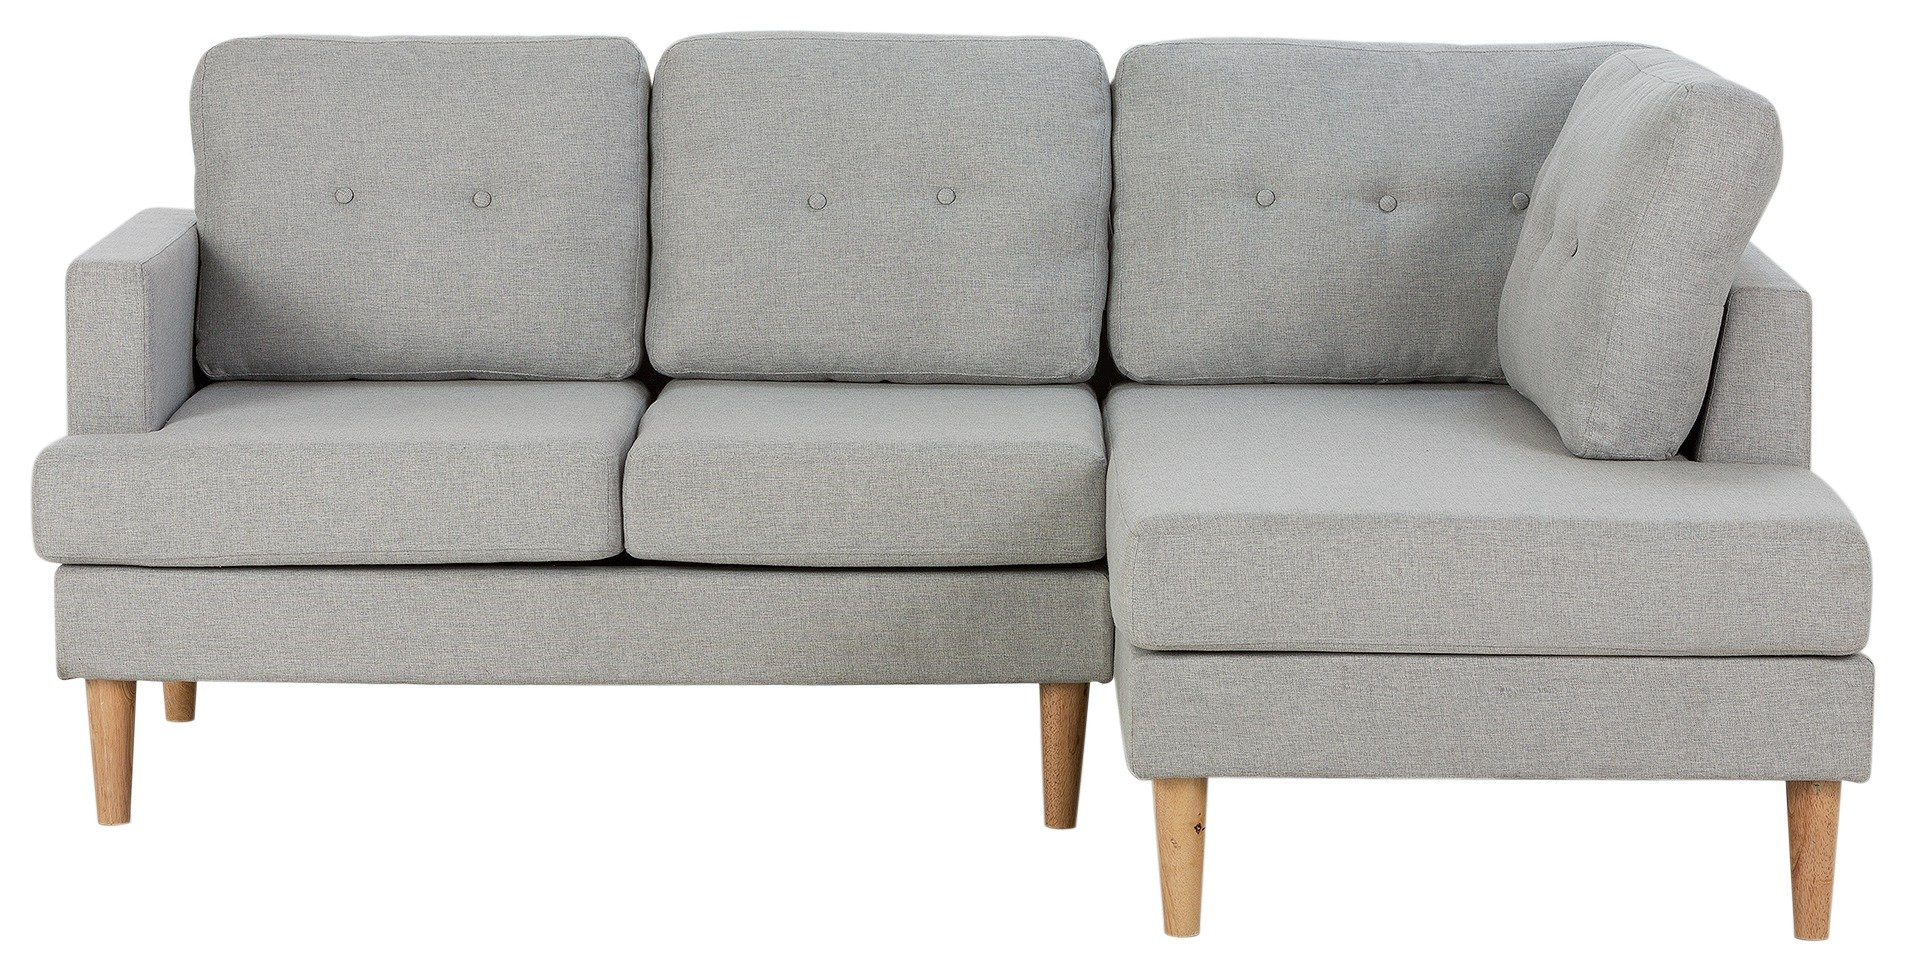 Argos Home Joshua Right Corner Fabric Sofa - Light Grey